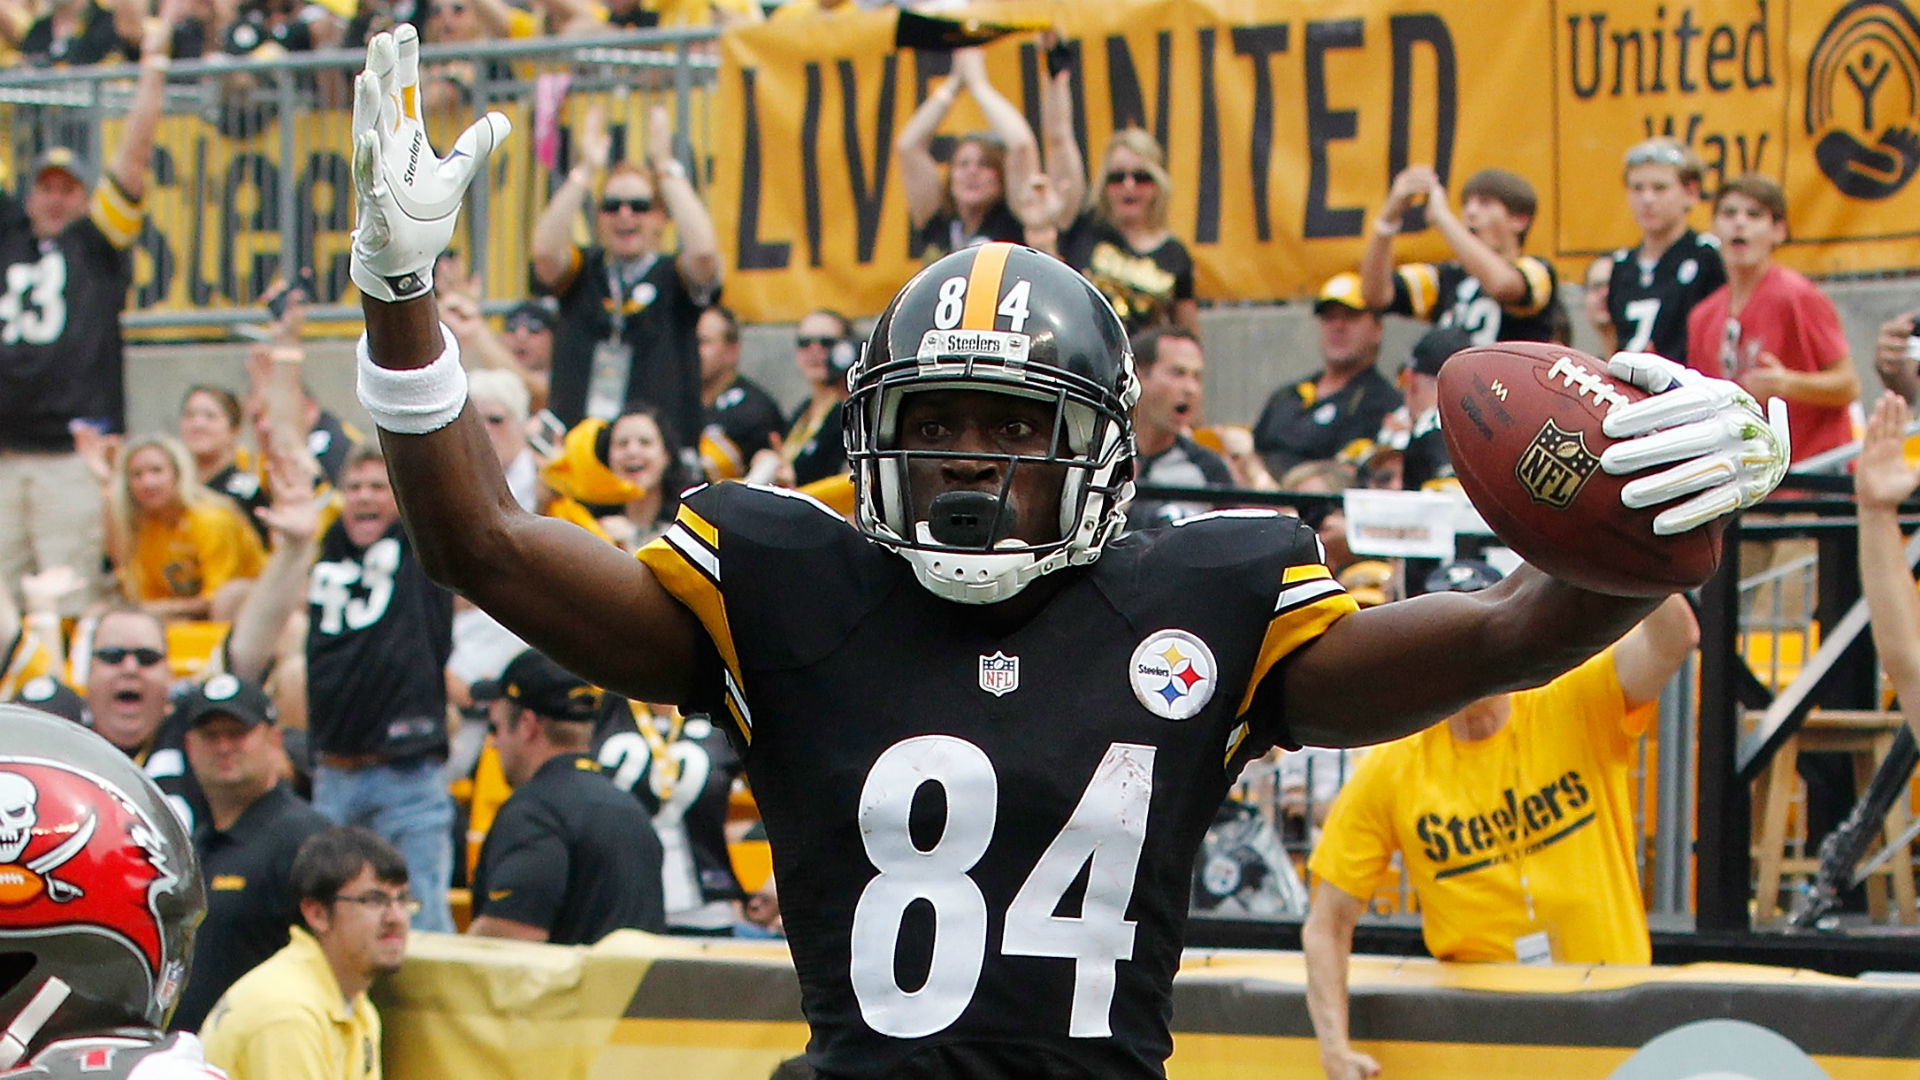 Antonio Brown explains how to do his touchdown dance | NFL | Sporting News